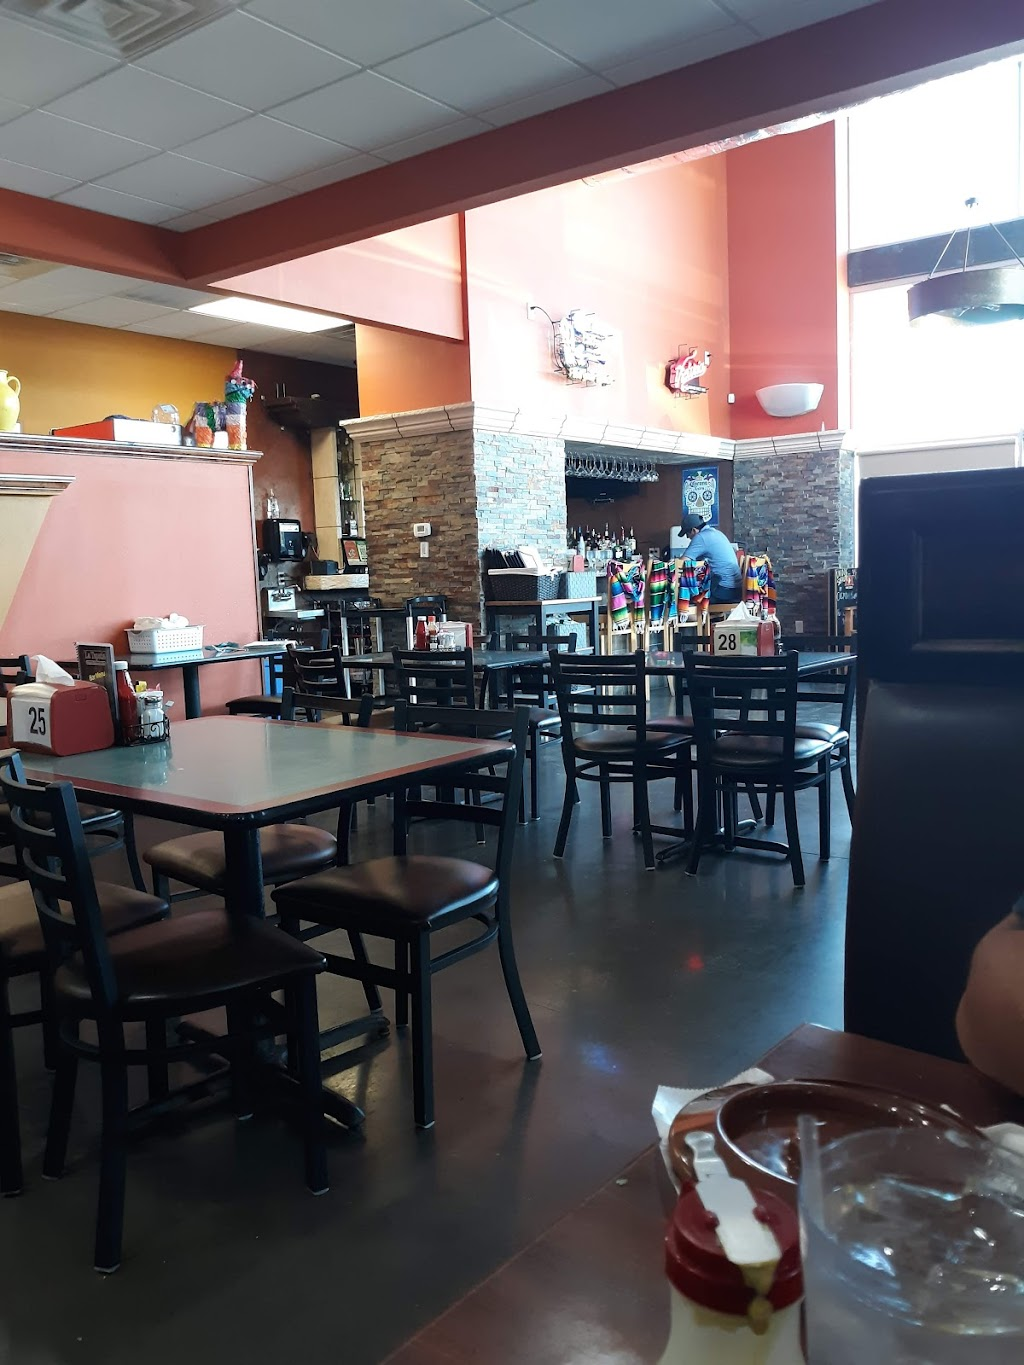 La Tapatia Mexican Restaurant and Bar - restaurant  | Photo 4 of 10 | Address: 651 N, US-183 Suite 310, Leander, TX 78641, USA | Phone: (512) 259-5019